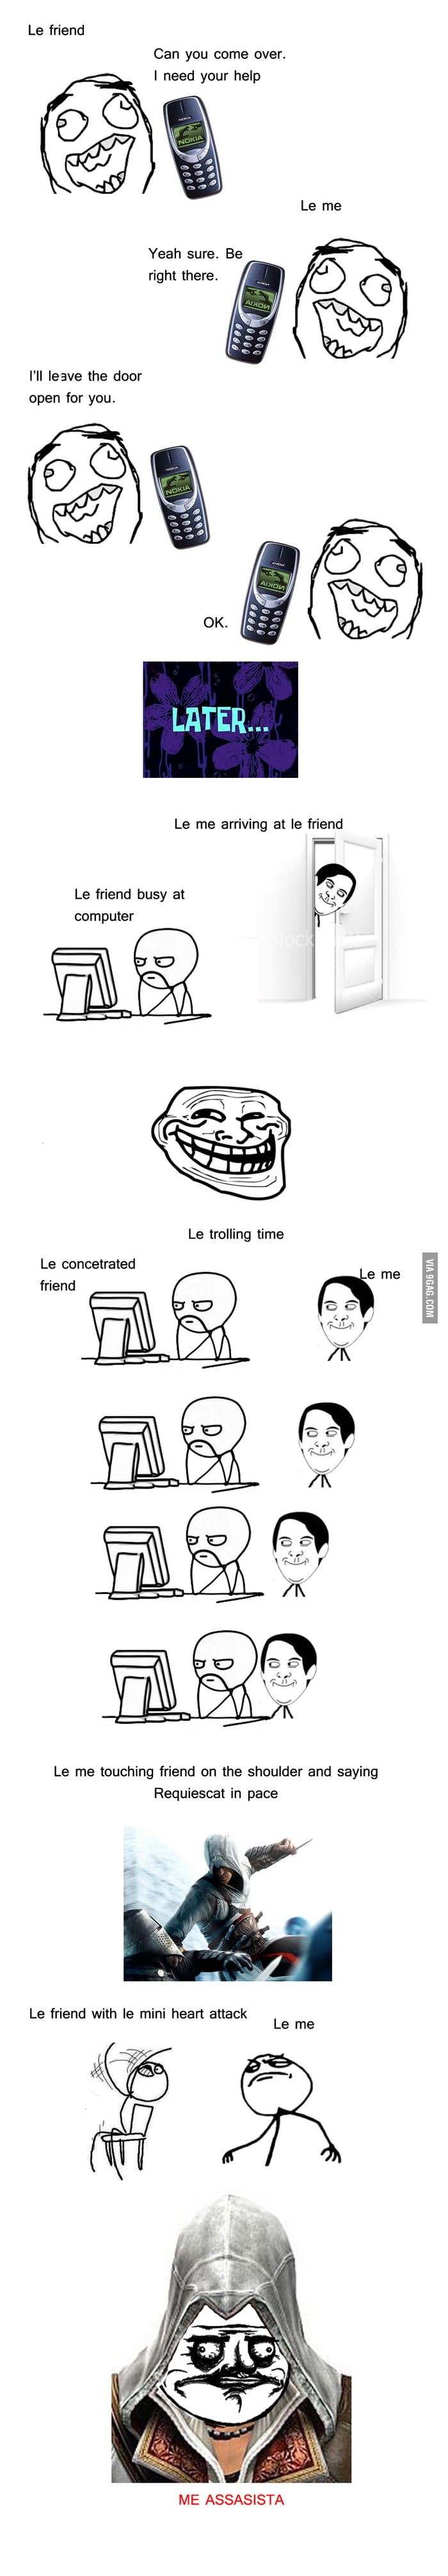 Me assassigusta Reloaded